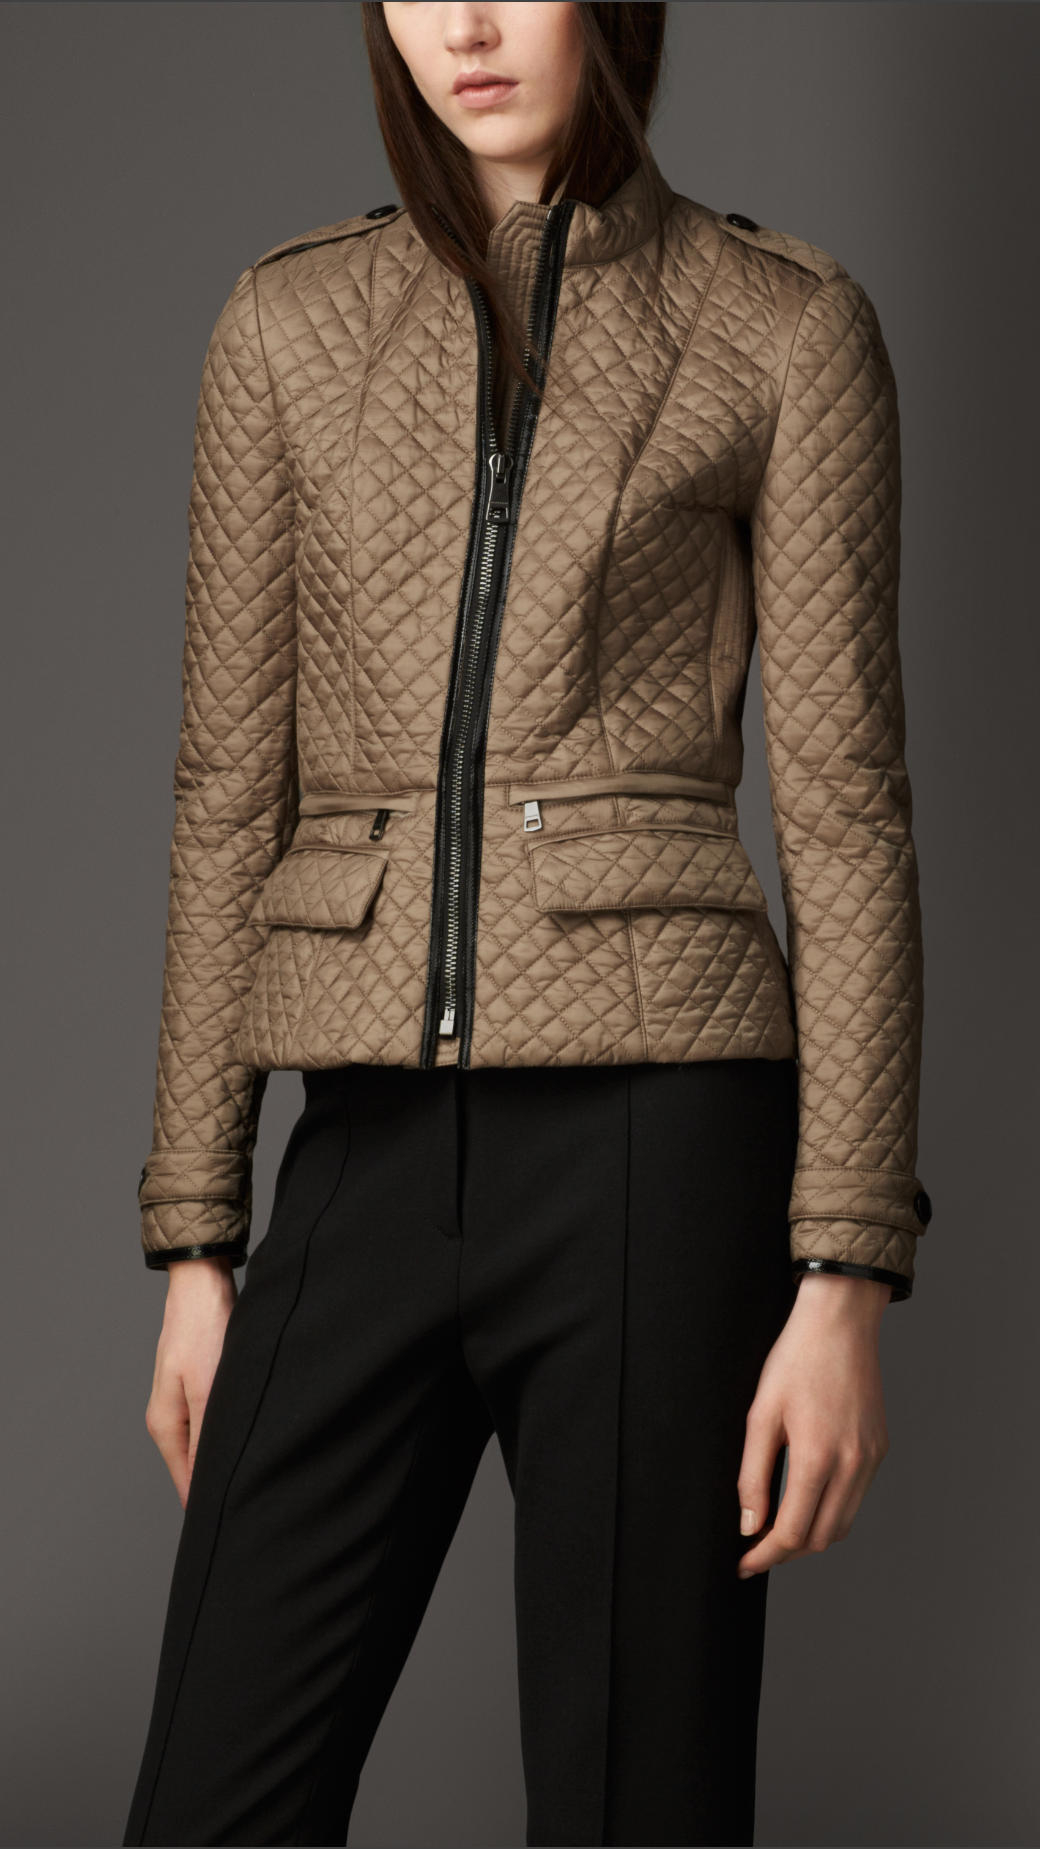 Lyst - Burberry Quilted Peplum Jacket in Brown : burberry quilted check trim coat - Adamdwight.com